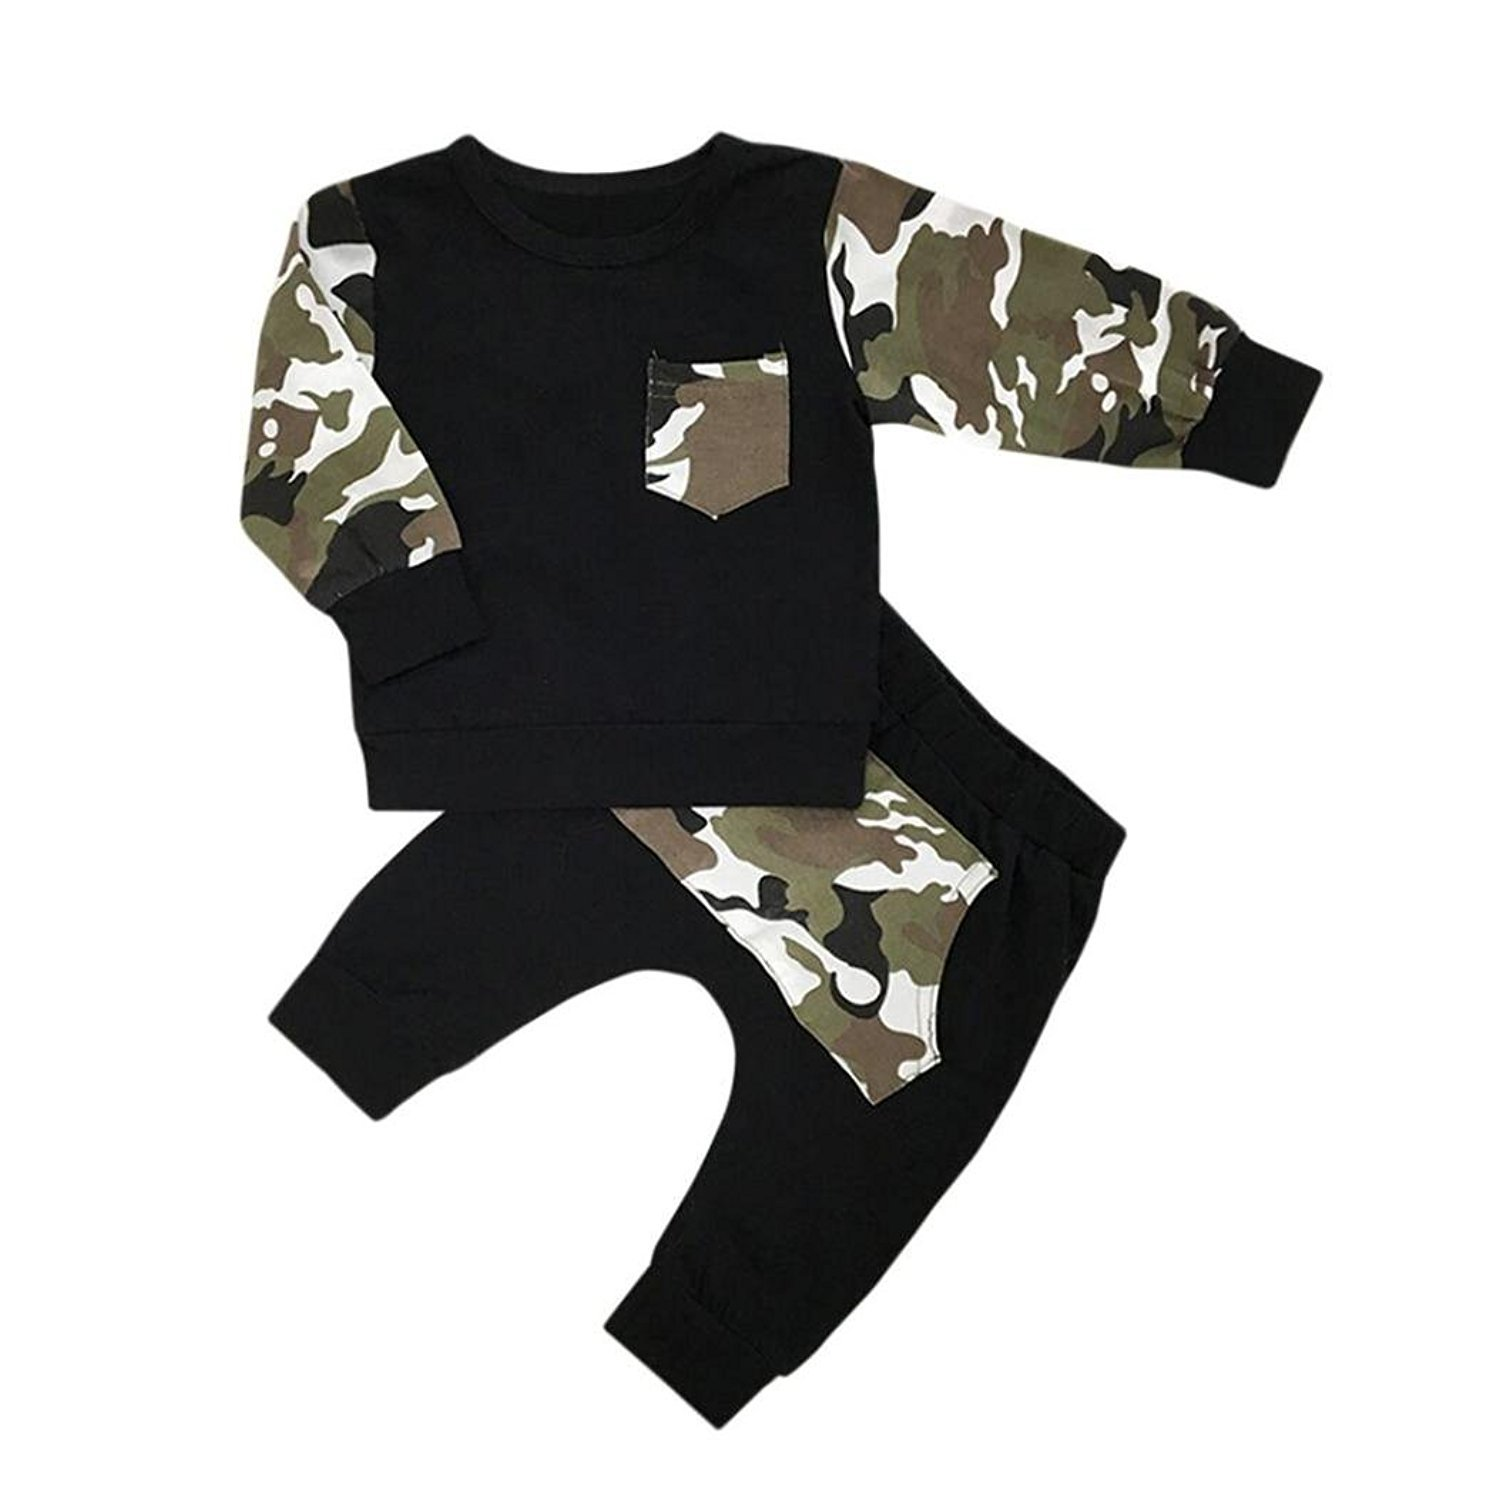 Webla Toddler Baby Boy Tracksuits T Shirt Tops+Pants Camouflage Clothes Set Ages 0-24 Months